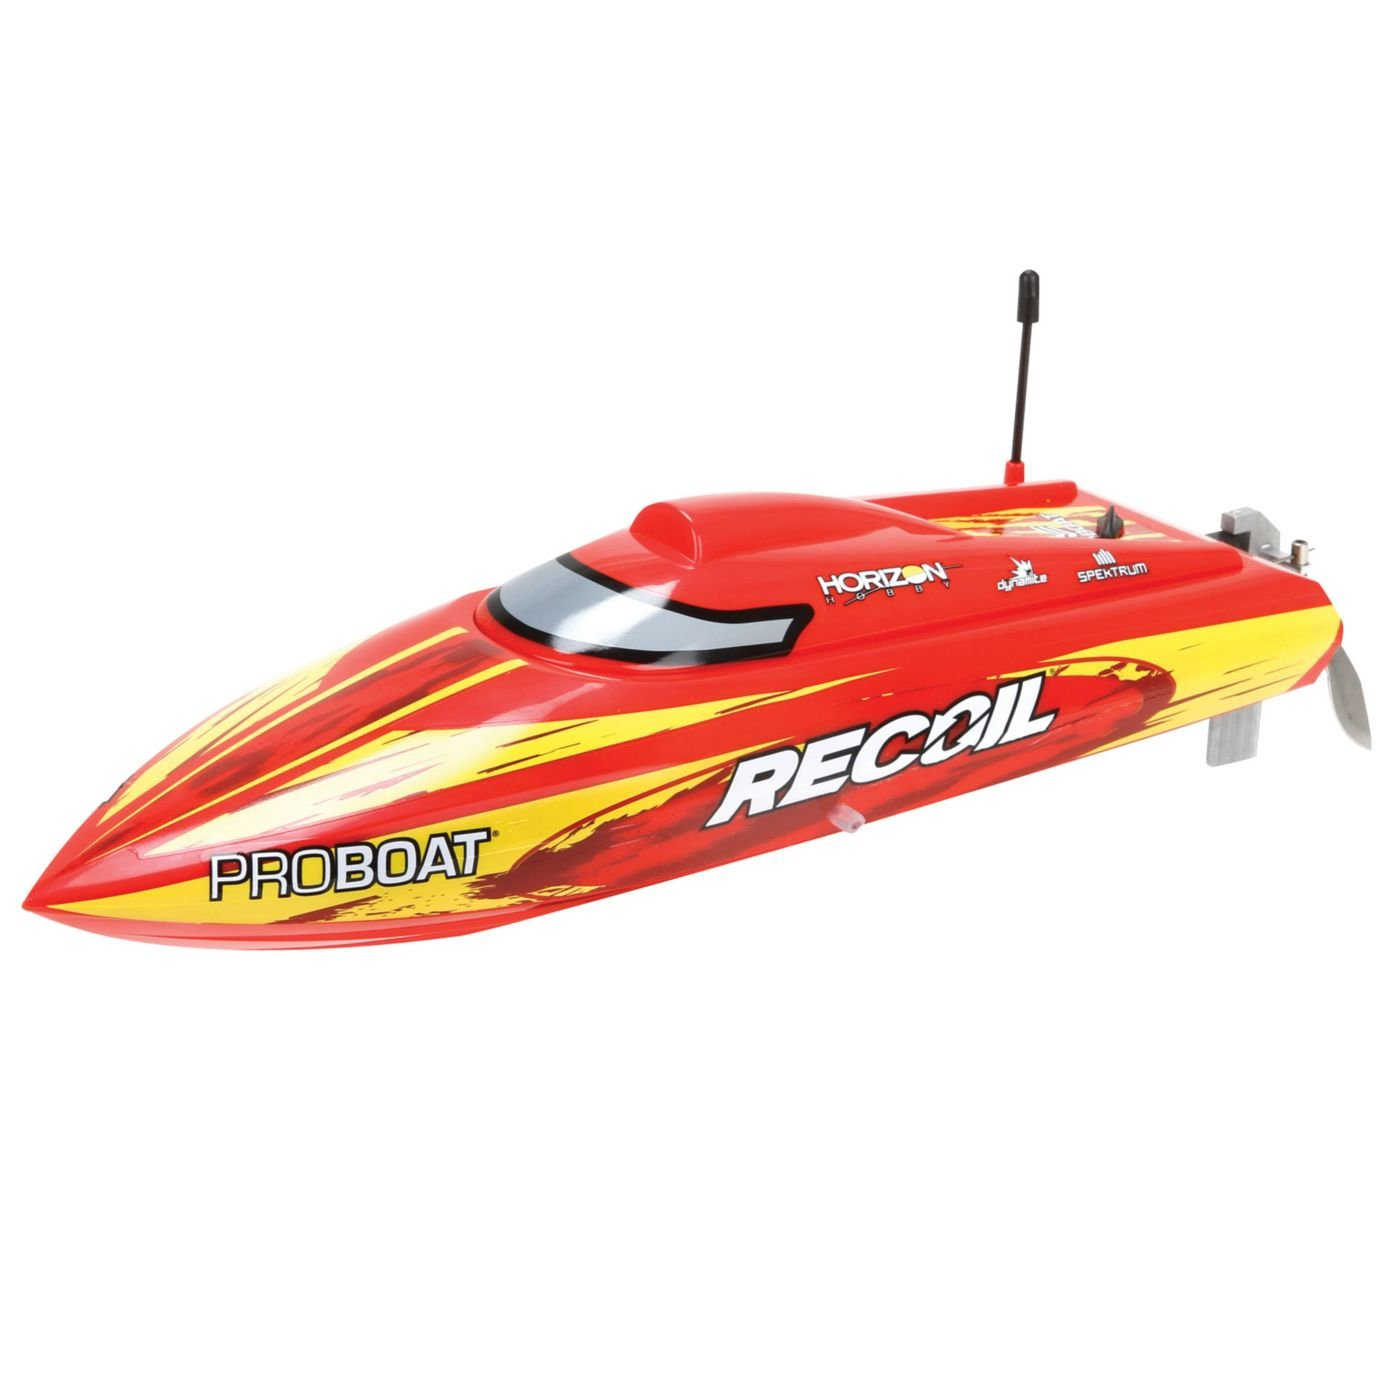 Top 8 Best RC Boats Reviews in 2021 You Should Consider Buying 8